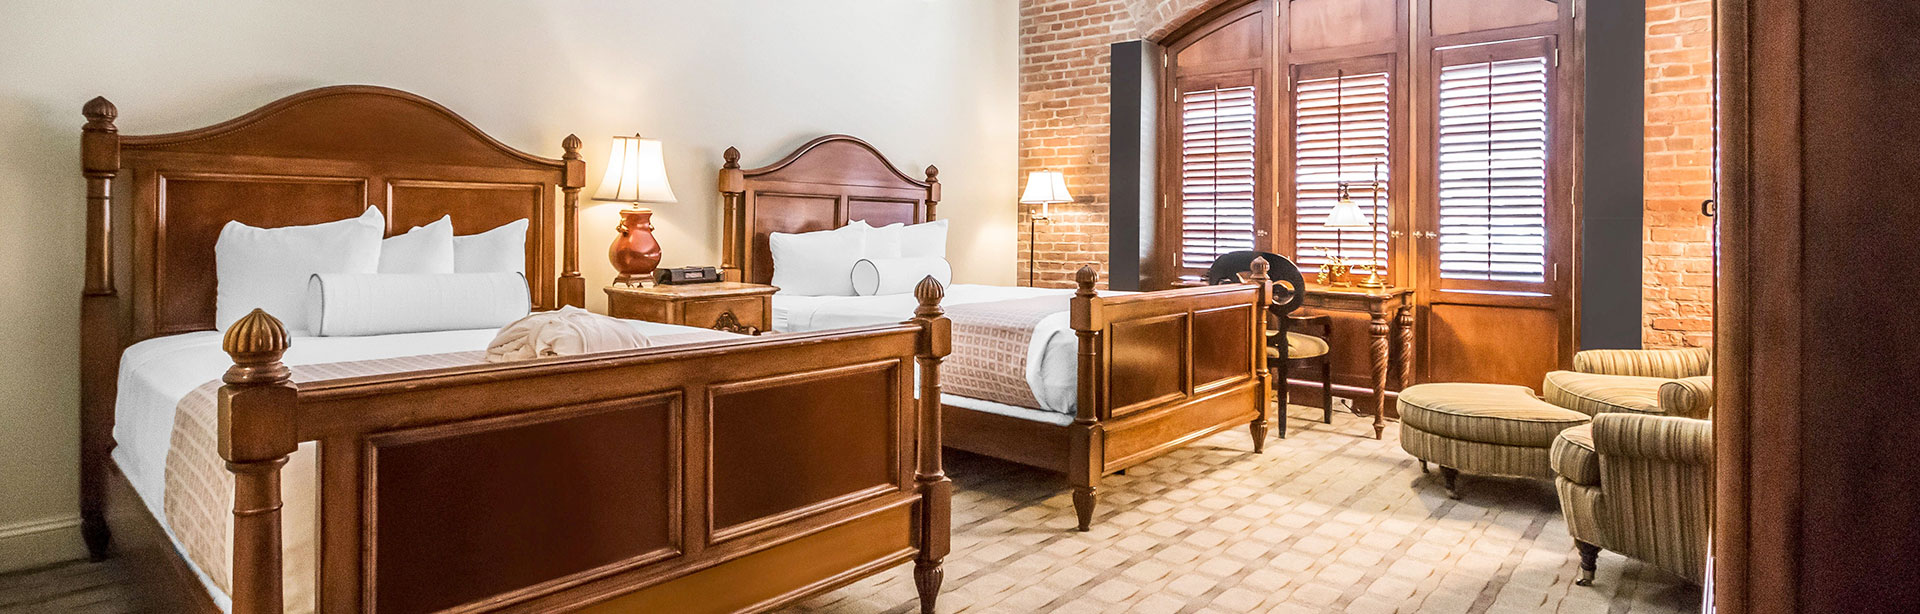 Two Queen Bed Harbor View Room at Inn at Henderson's Wharf Baltimore, Maryland